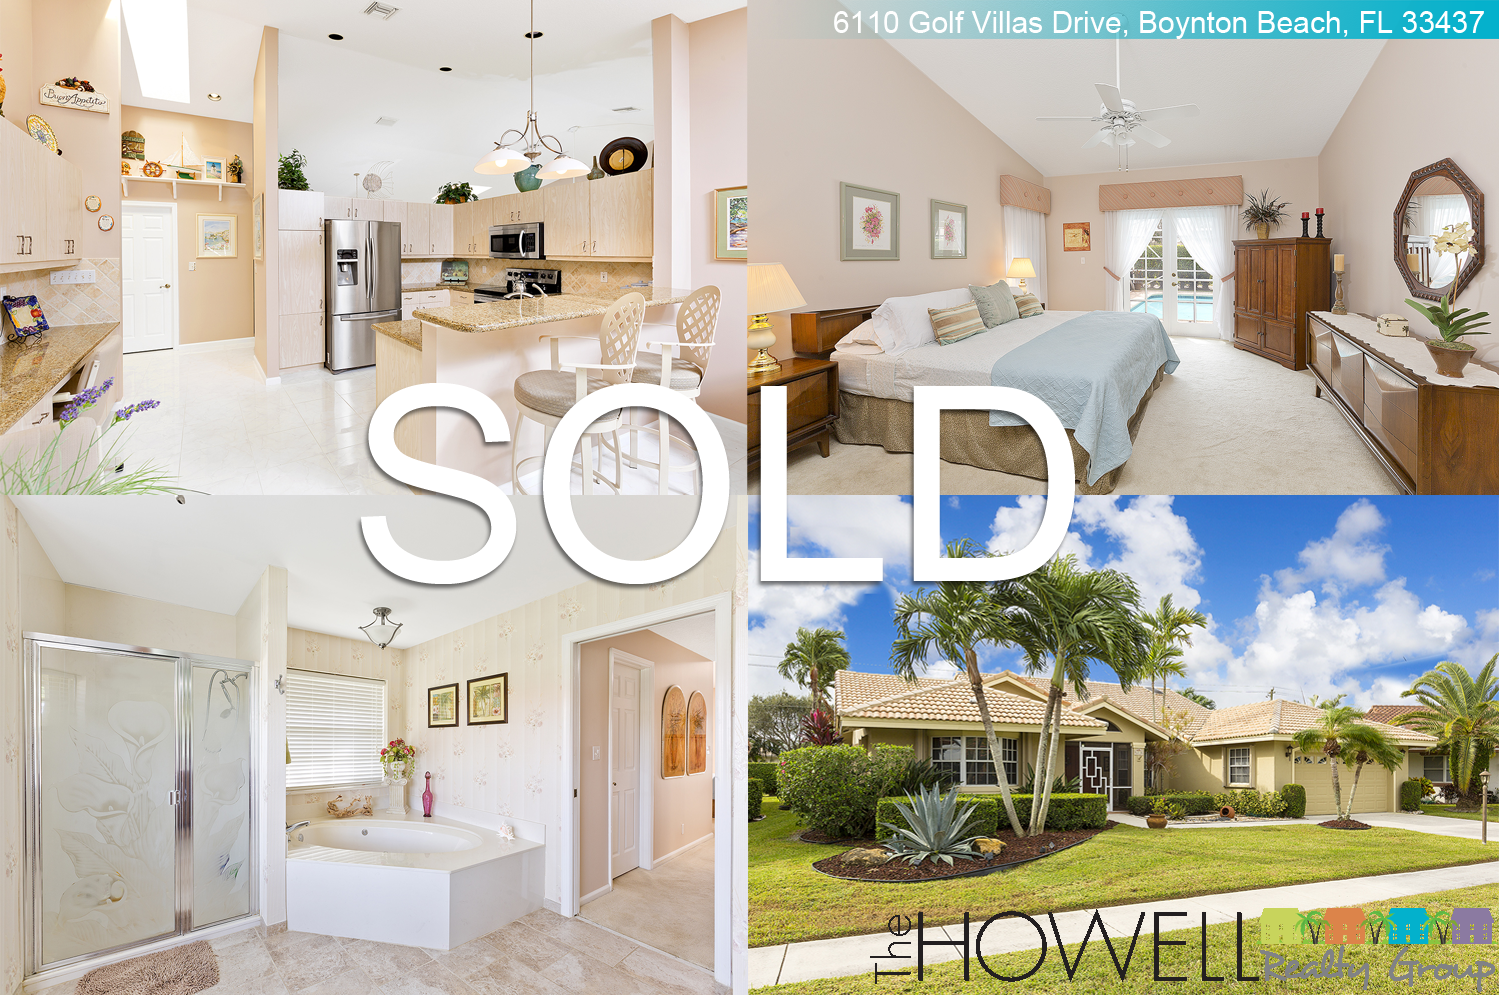 6110 Golf Villas Dr Home SOLD